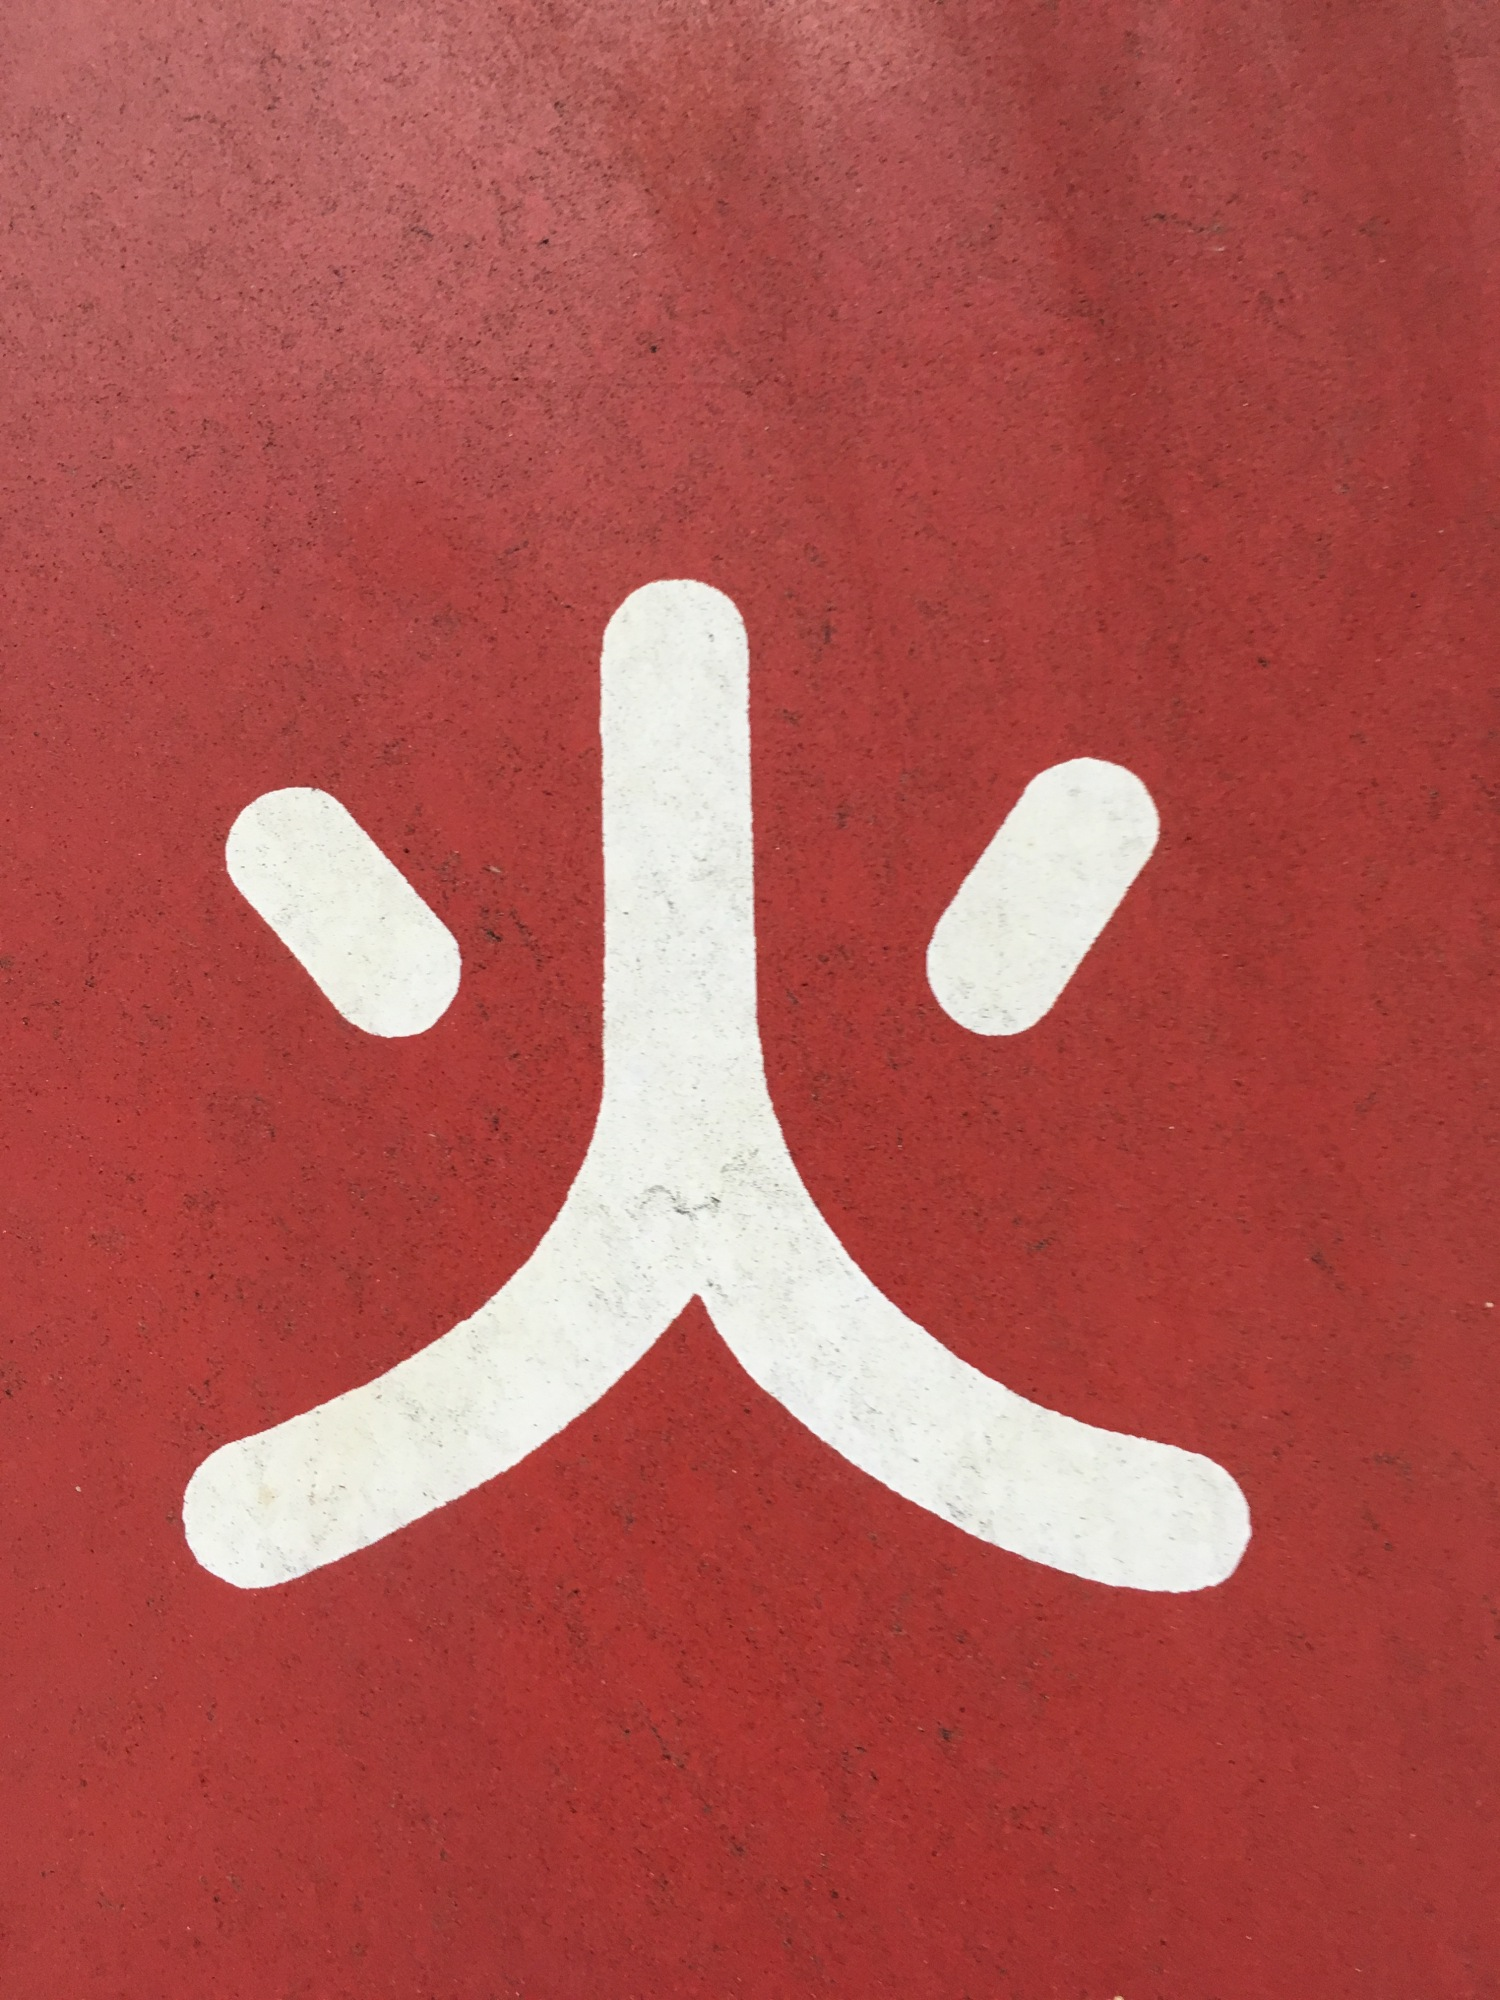 The kanji for fire. To me it looks like someone putting their arms up and shouting 'fire, fire'. We all have our own ways of remembering these characters!